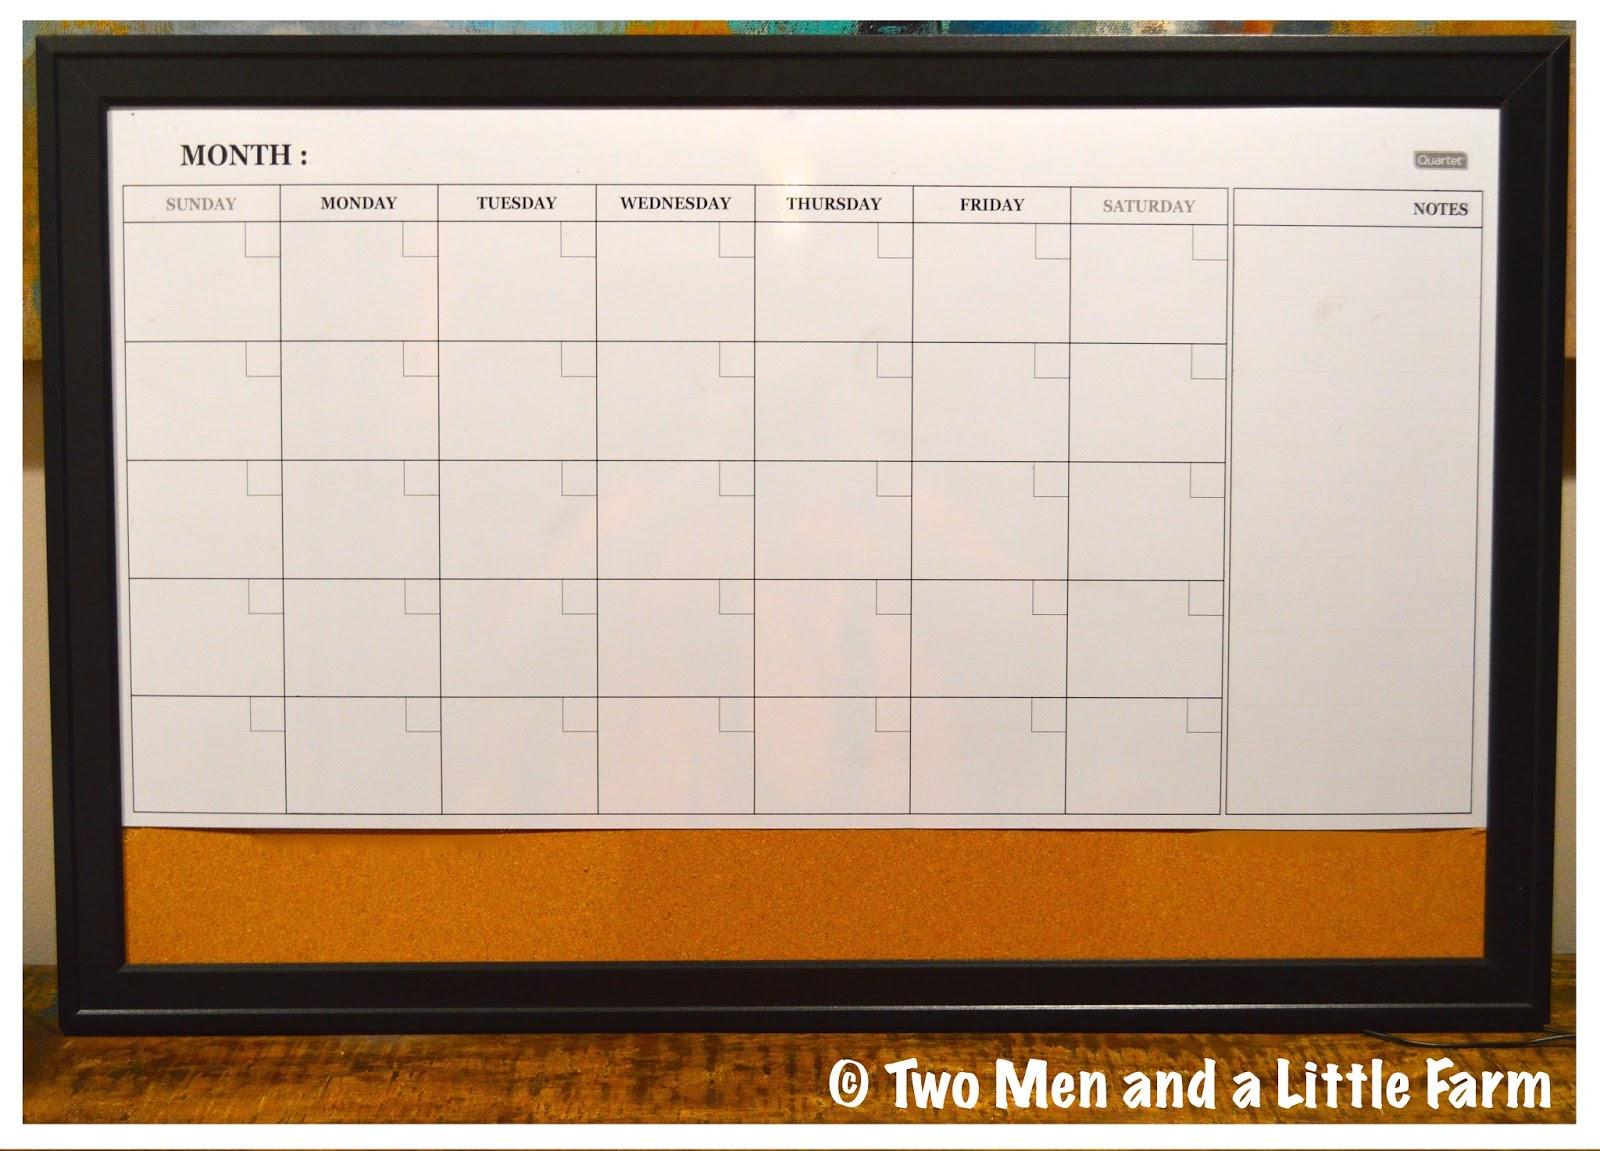 Dry Erase Weekly Calendar : Two men and a little farm dry erase calendar board find